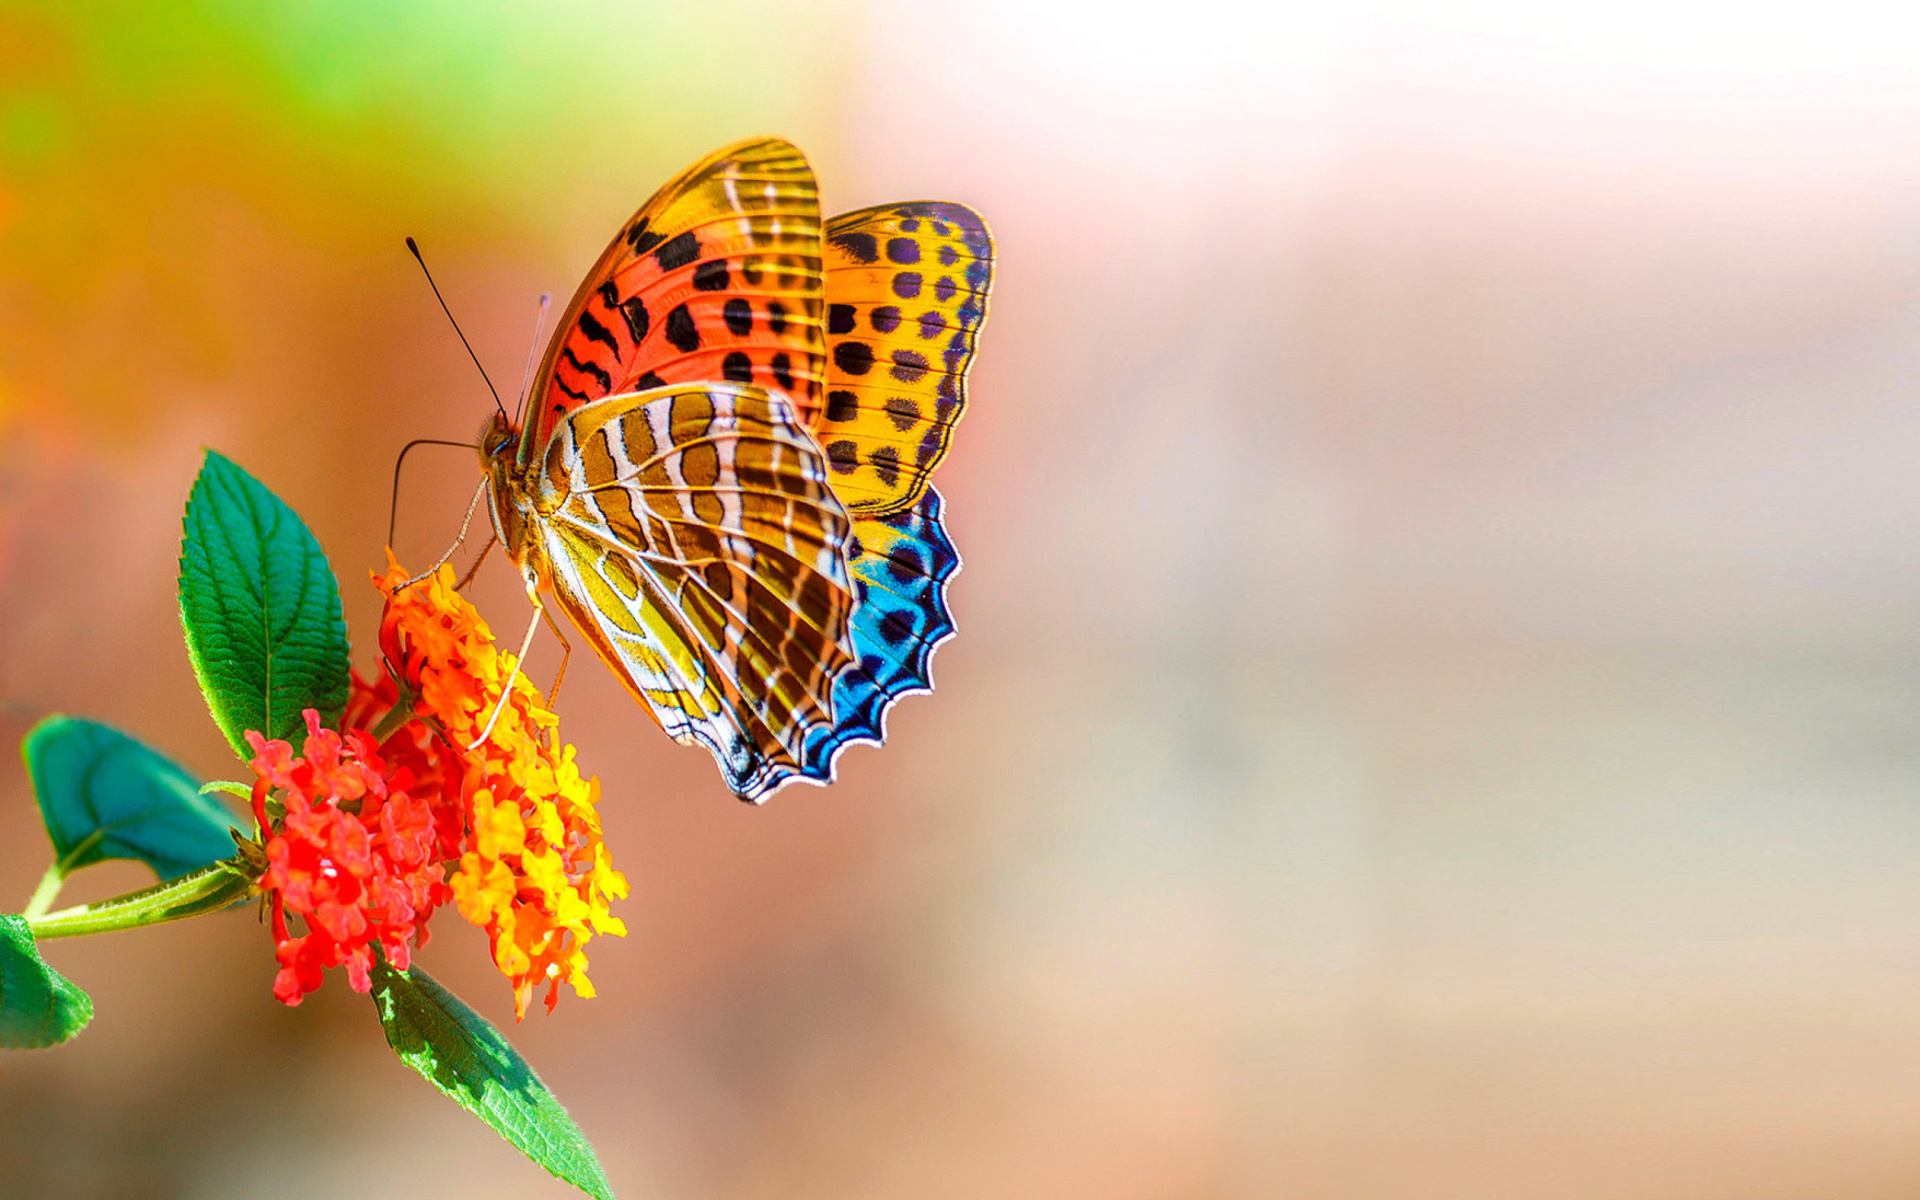 London Girl Wallpaper 1920x1200 Colorful Animated Butterfly Wallpaper For Widescreen